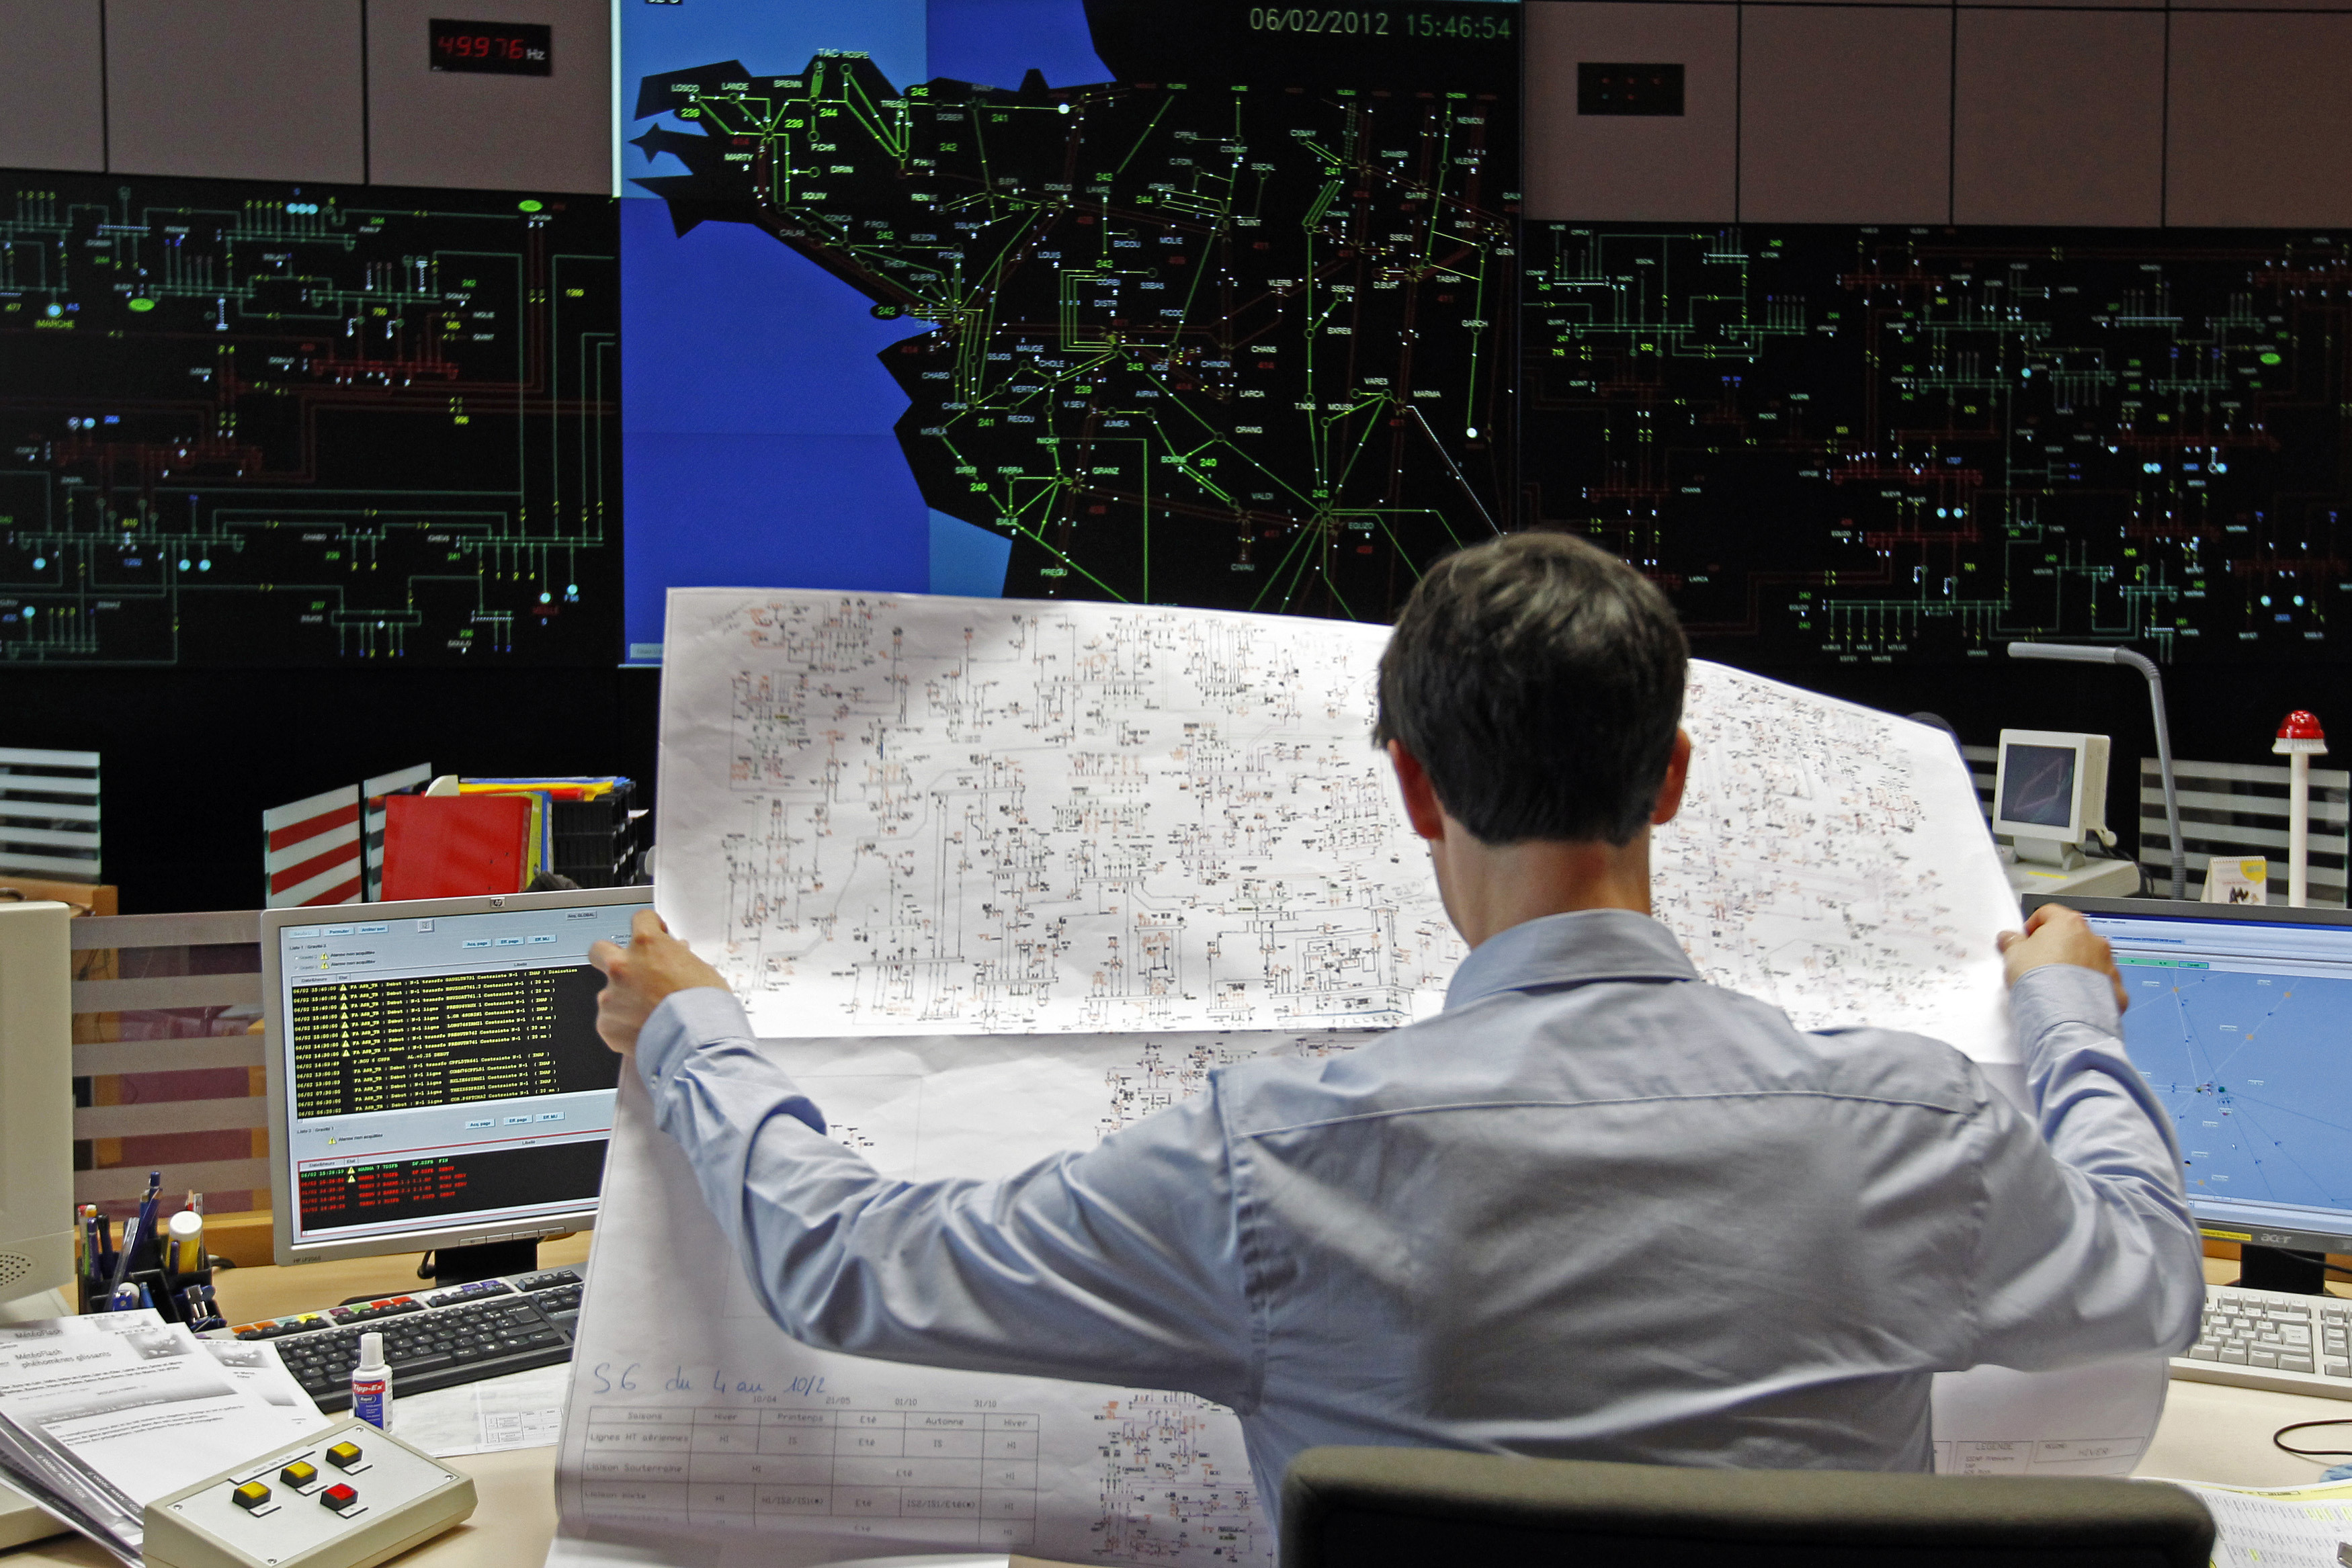 A technician hold a chart as he monitors electricity consumption at the French power grid RTE (Electricity Transport Network) in La Chapelle sur Erdre, near Nantes, western France, February 6, 2012. French power grid RTE predicts consumption in France will reach a new time high of 97,700 megawatts (MW) at 1800 GMT on  Monday before rising to 98,000 MW on Tuesday.  REUTERS/Stephane Mahe (FRANCE - Tags: ENVIRONMENT) - PM1E8261ABJ01